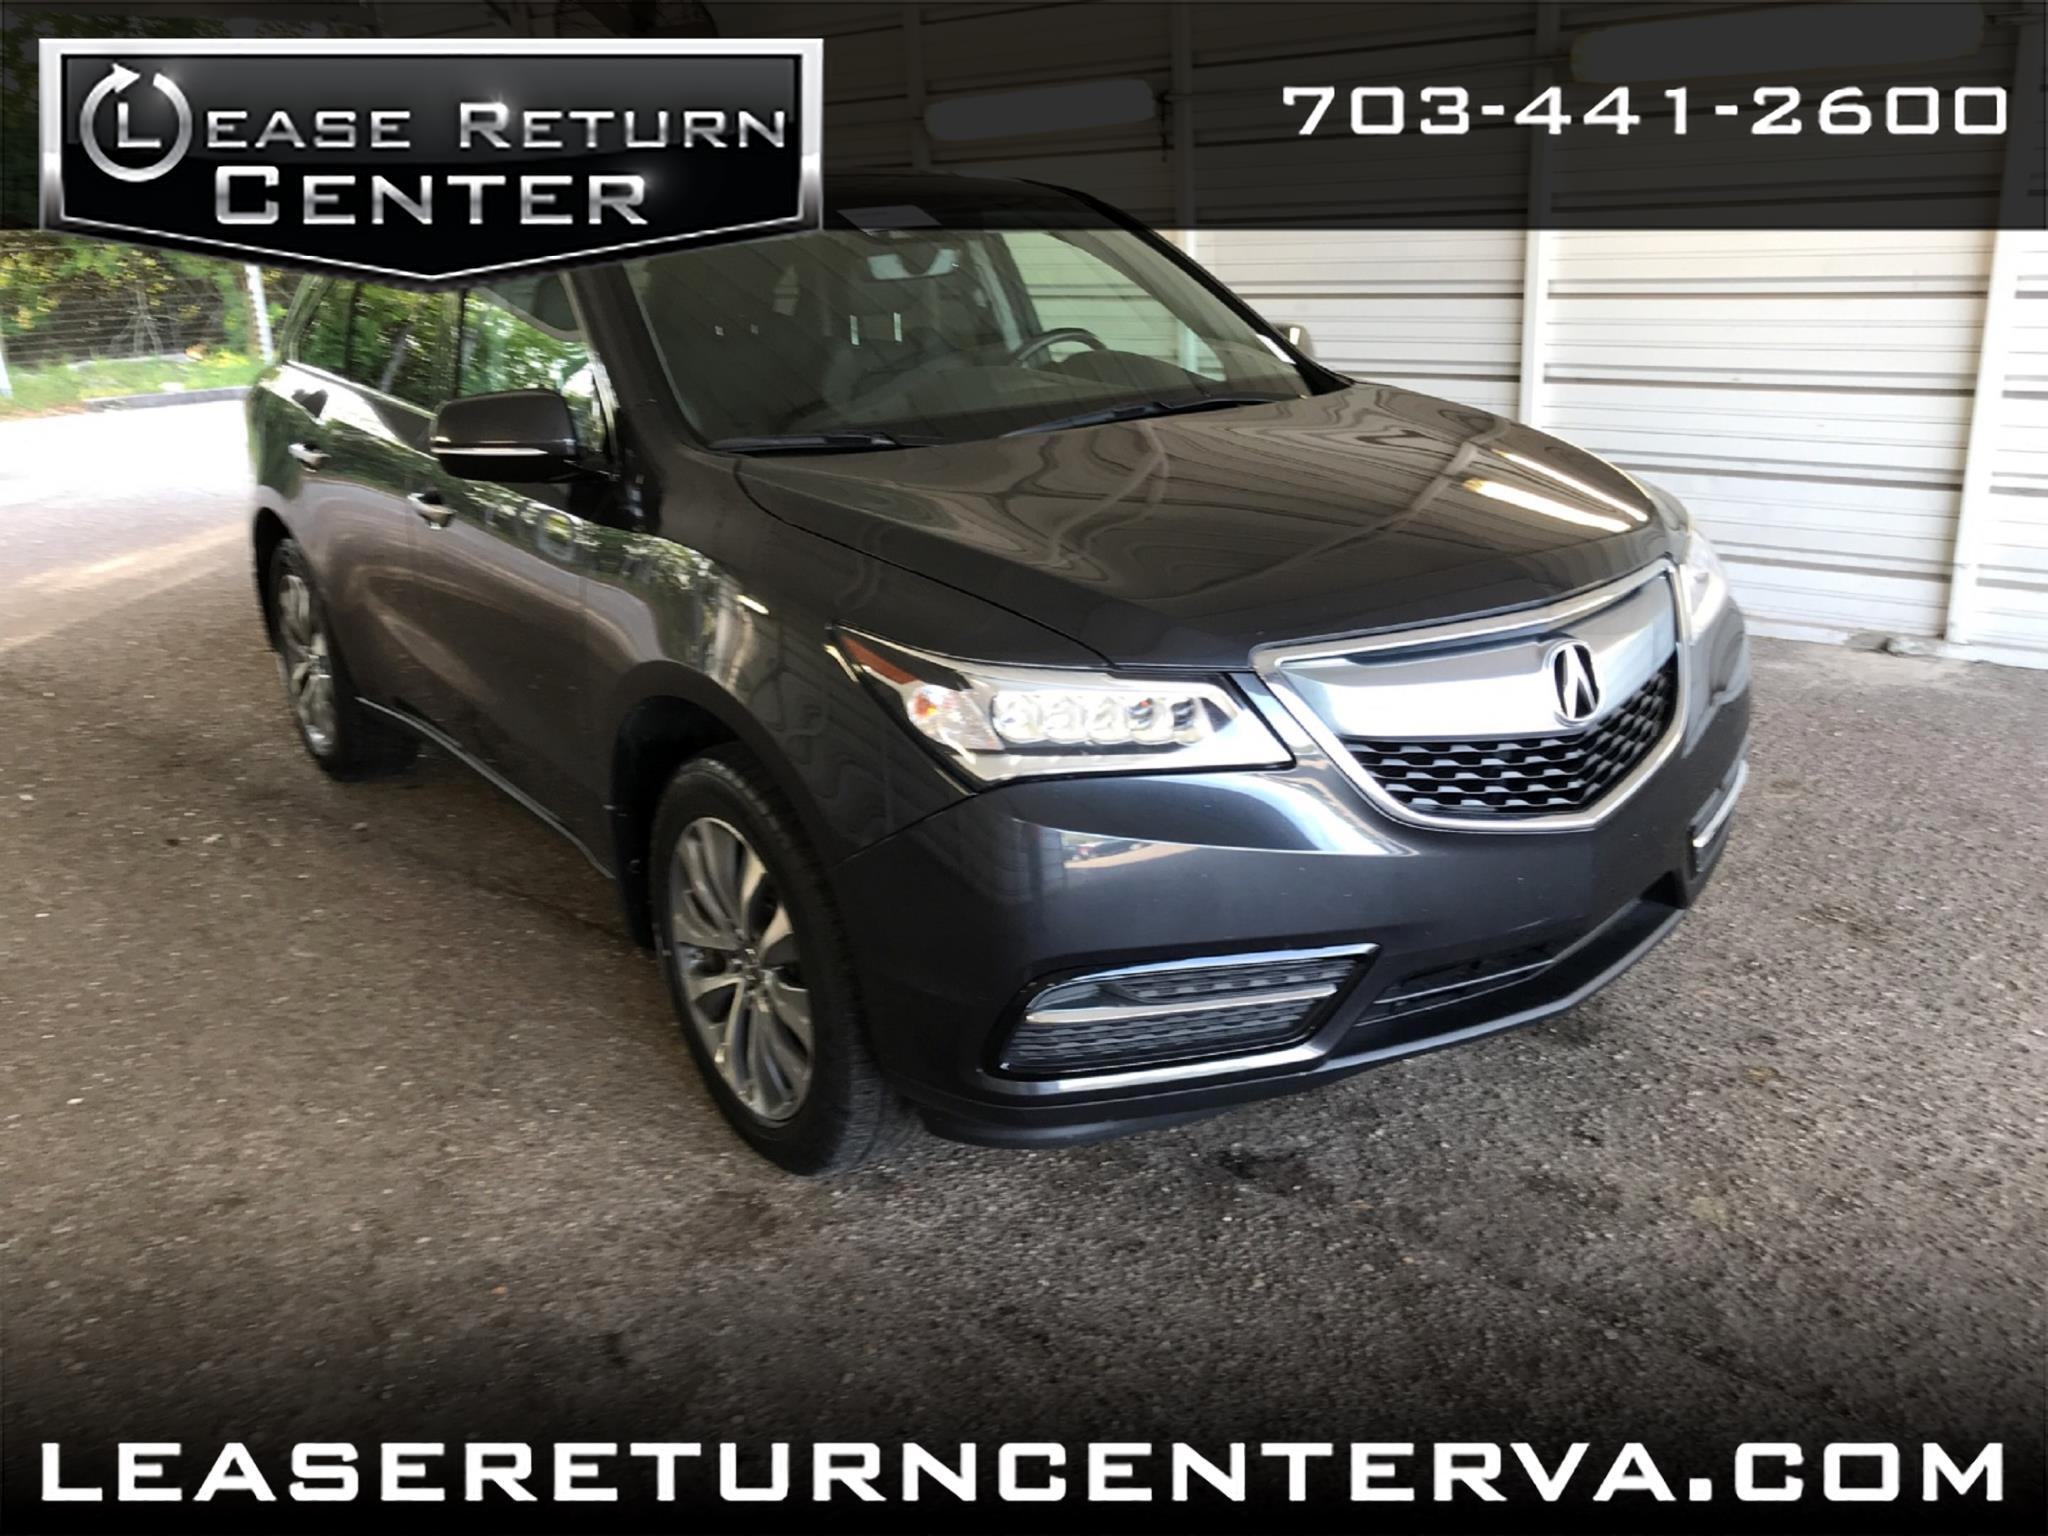 2016 Acura MDX Navigation System With Acuara Watch Plus